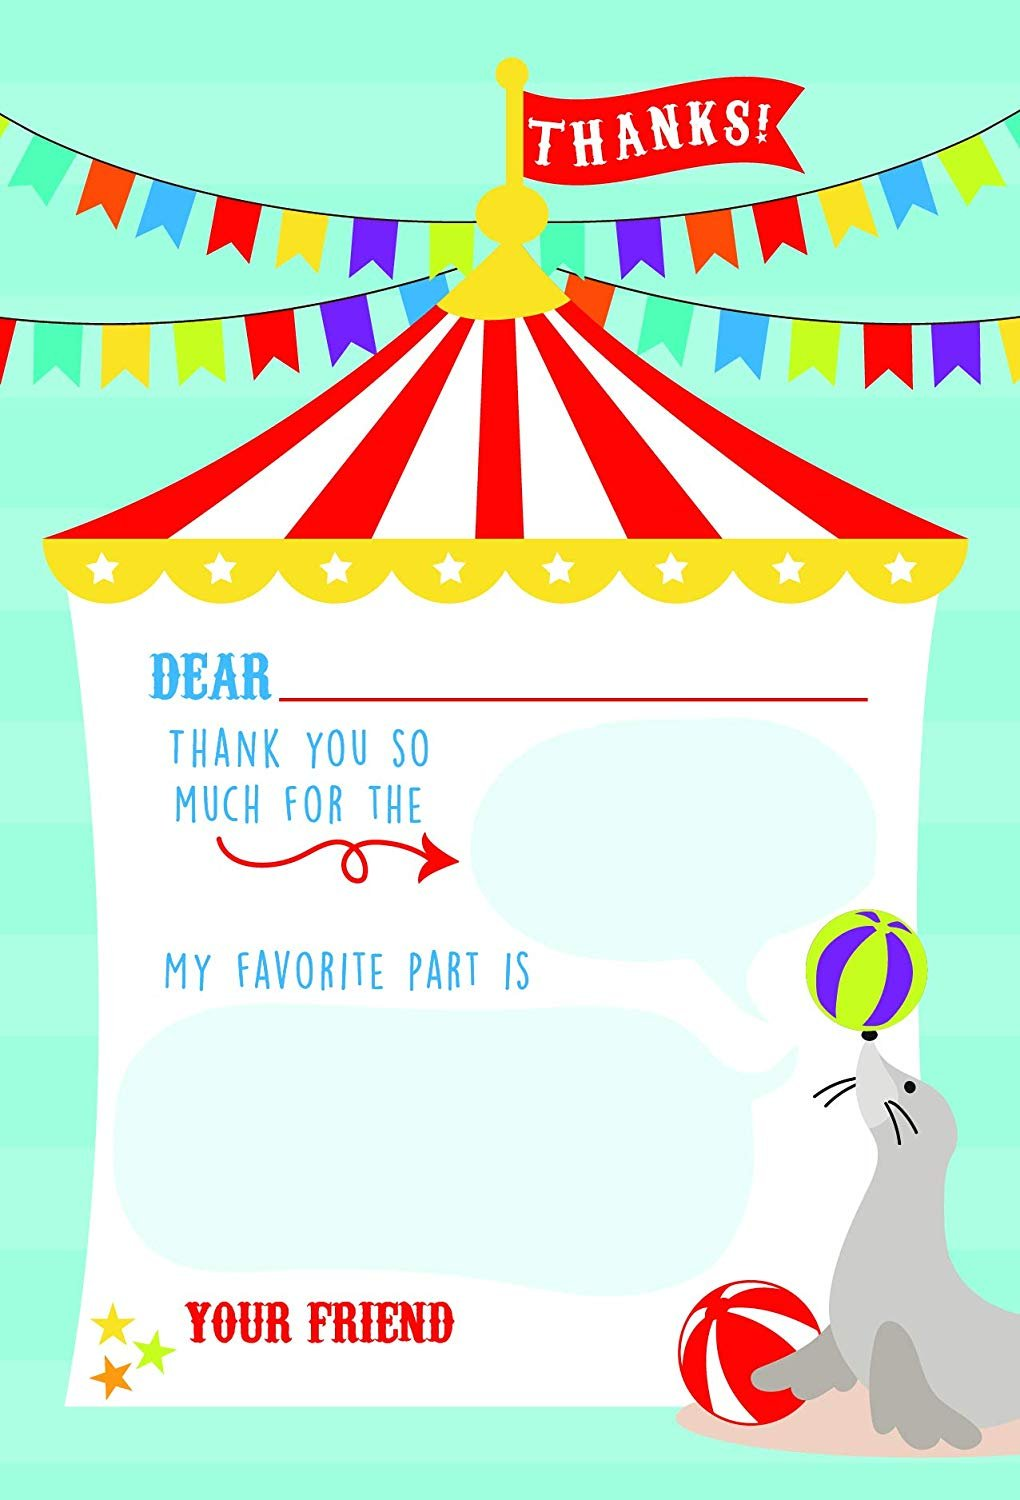 Peanut bags 5 Party Bags-Circus-Carnival-Elephant Adorable Graphics Fun!